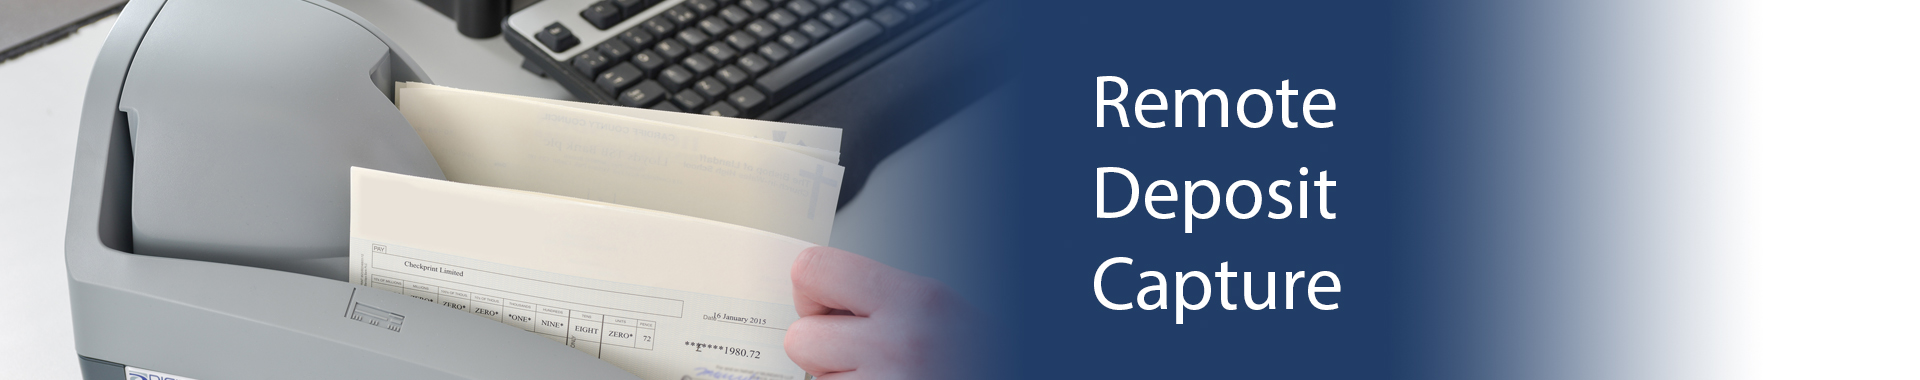 remote deposit capture